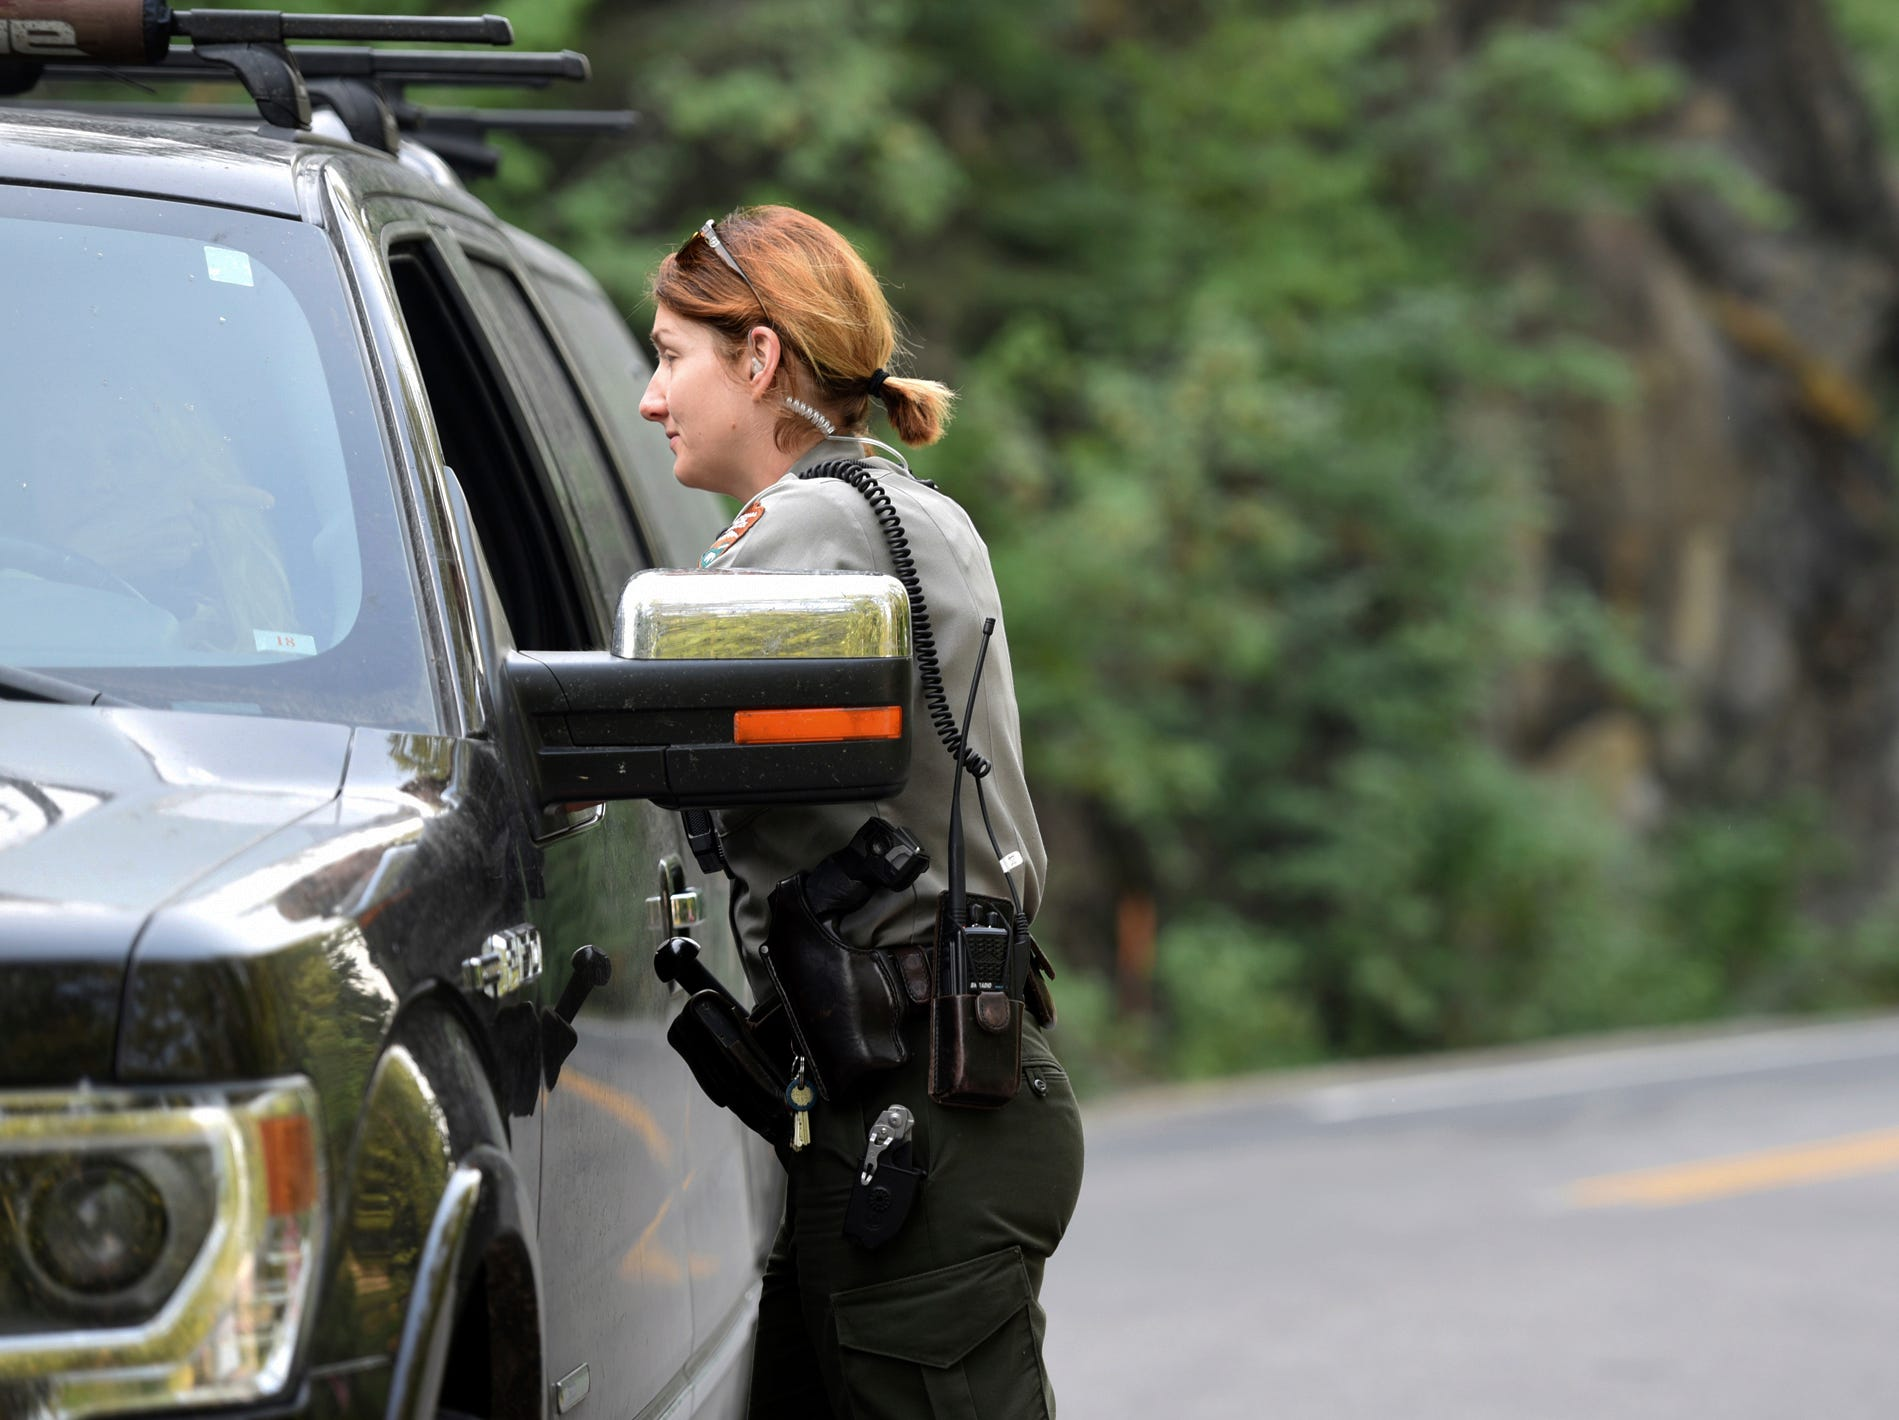 Park Ranger Elizabeth Boyden talks with a visitor at the intersection of Apgar Loop and Going-to-the-Sun Road in Glacier National Park on Monday, August 13. Visitors had to be stopped at Apgar and rerouted either to East Glacier, from which visitors can still reach Logan Pass, or toward North Glacier. (Brenda Ahearn/The Daily Inter Lake via AP)